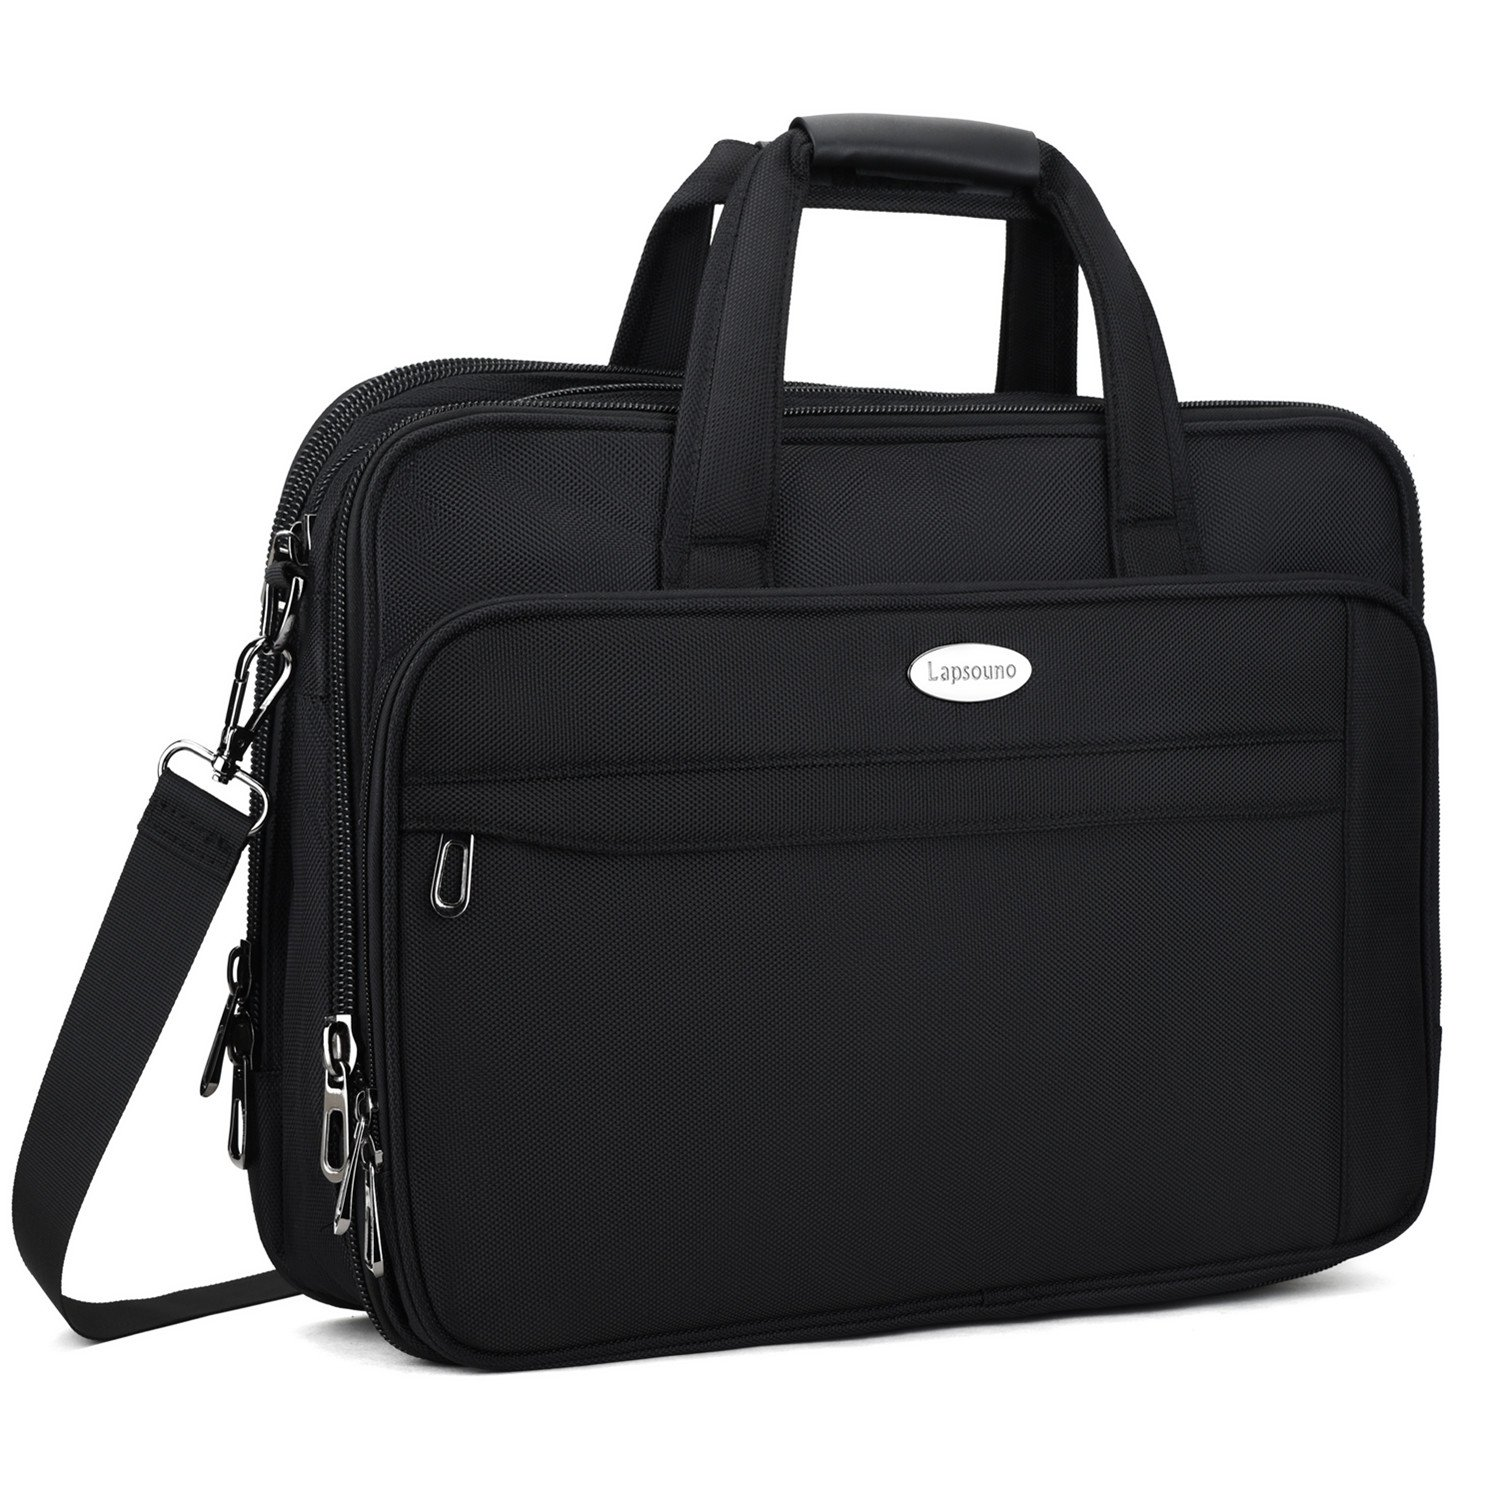 17 inch Laptop Bag, Expandable Large Briefcase for Men, Nylon Messenger Bags, Crossbody Travel Shoulder Bags for 17.3'' Laptop Notebook MacBook Ultrabook